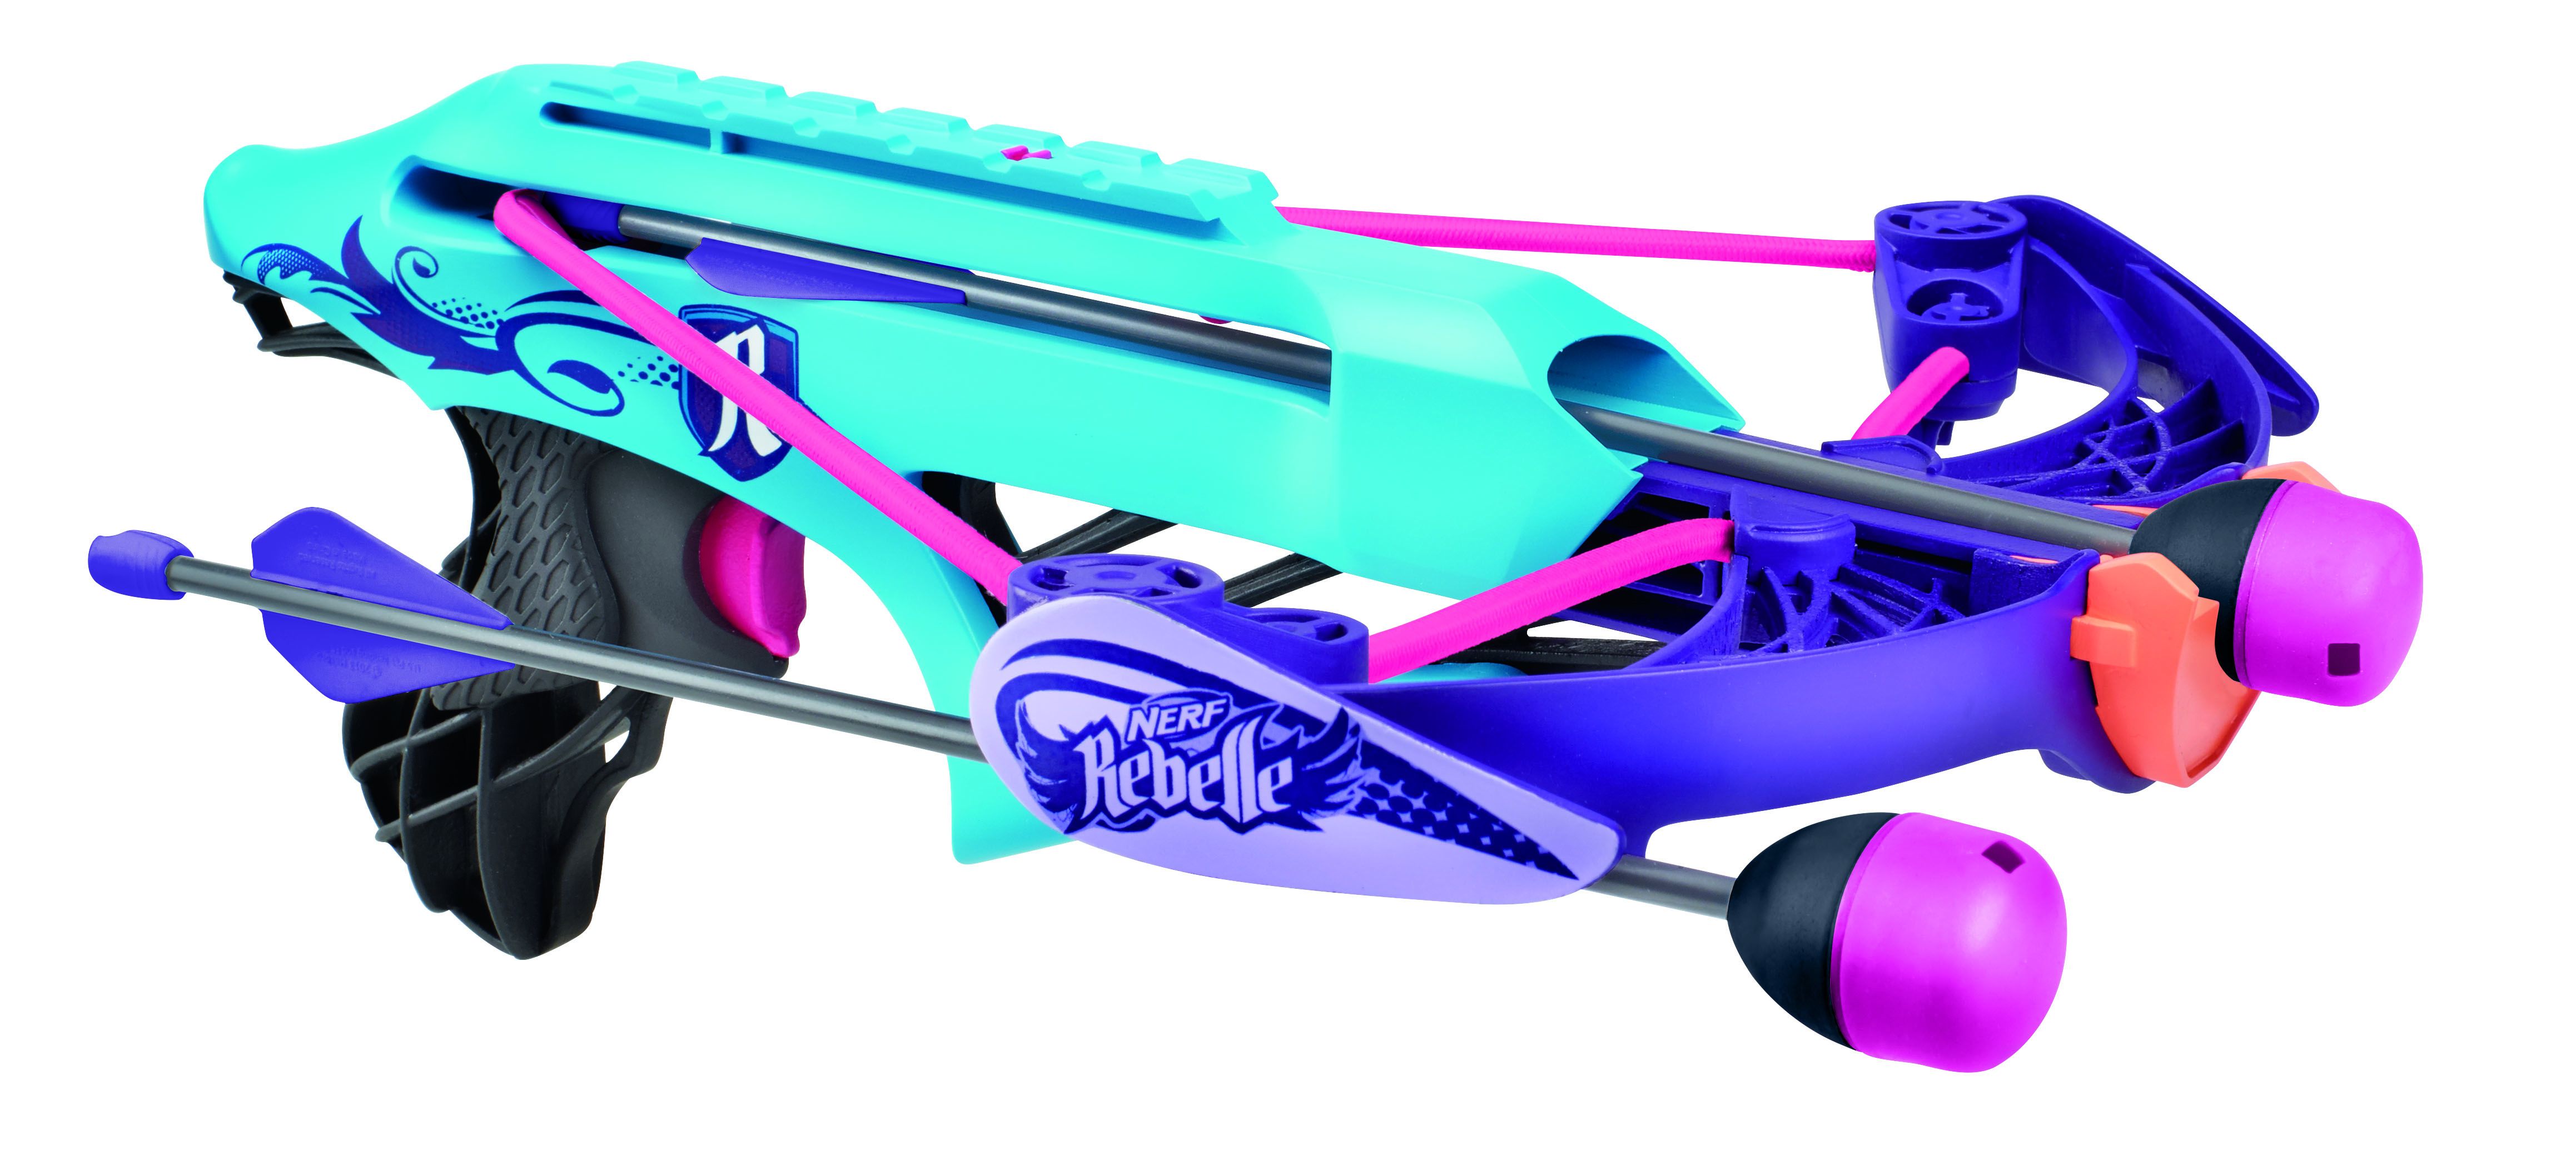 NERF REBELLE COURAGE Crossbow